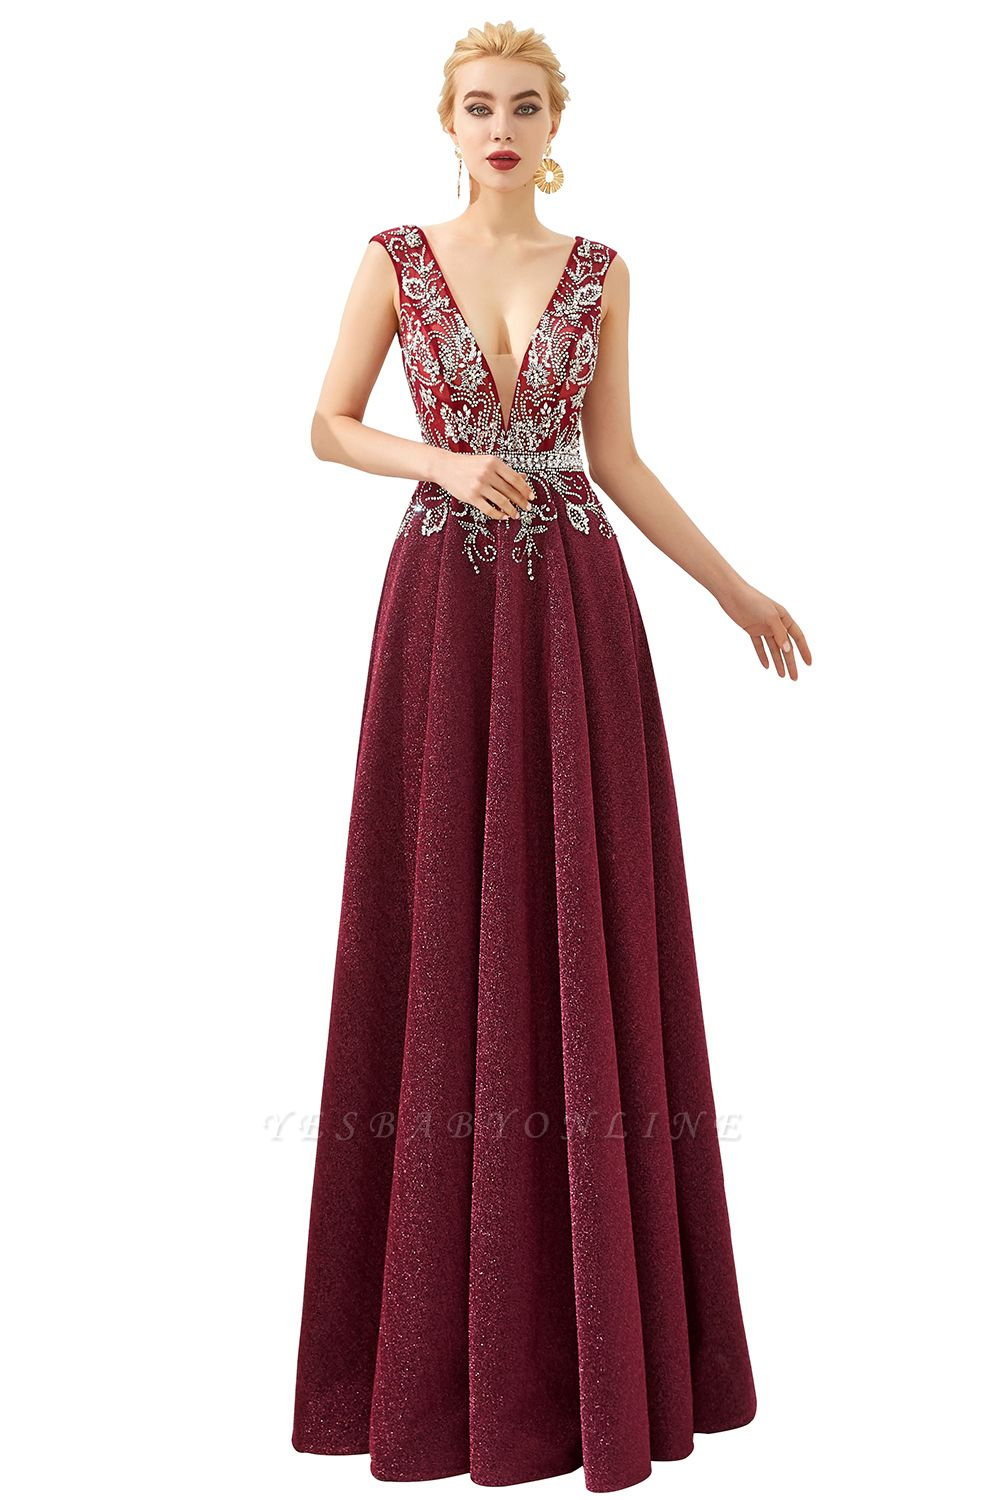 Straps Deep V-neck Beaded Sexy Long Prom Dresses | Elegant Floor Length Evening Dresses